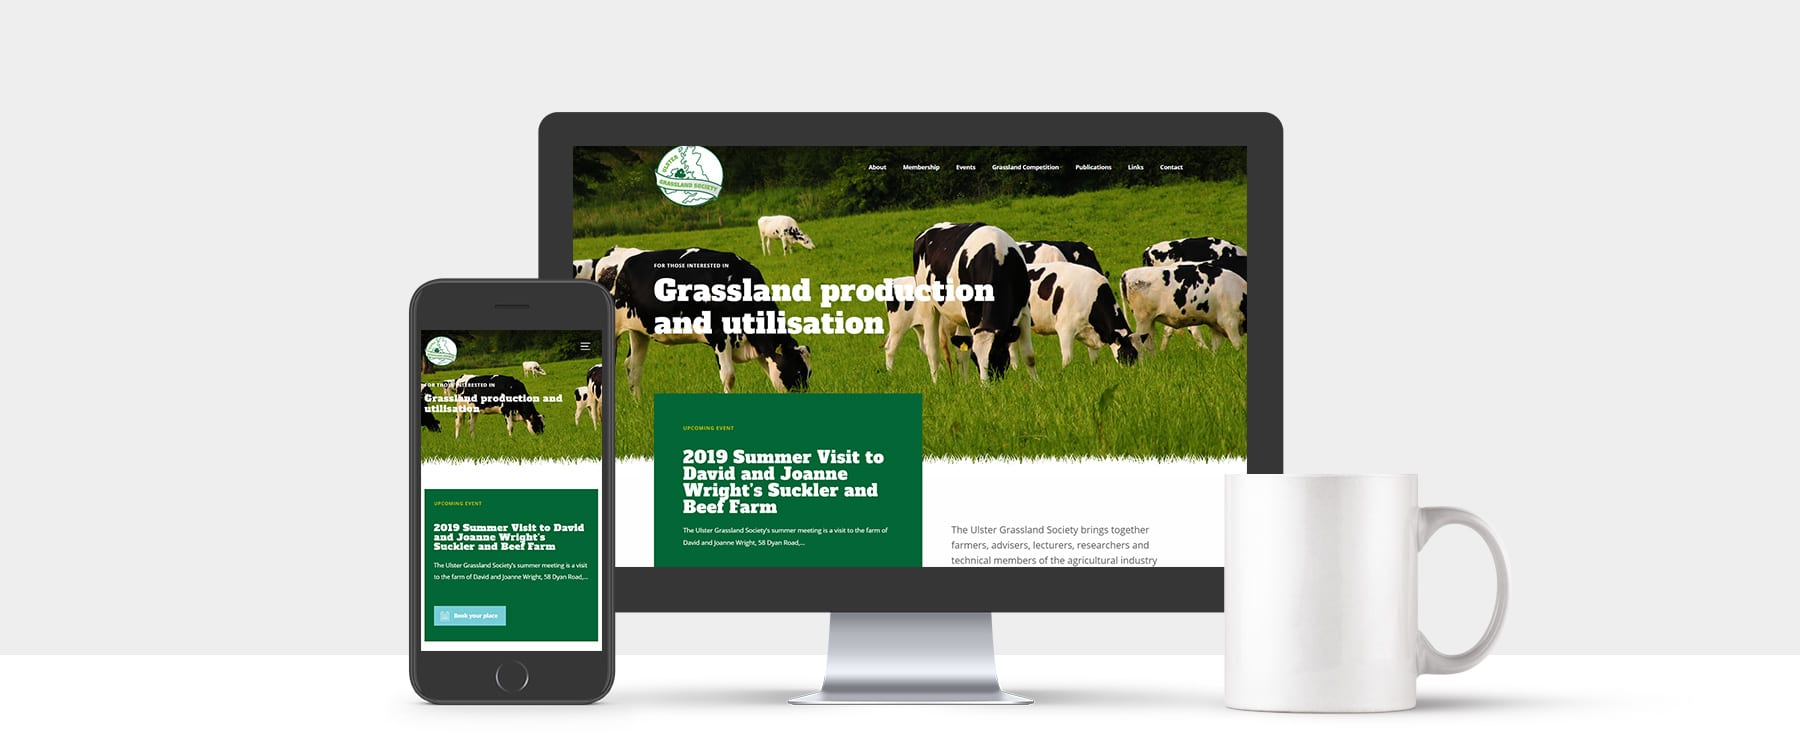 Ulster Grassland Society Launch New Contemporary Website Image